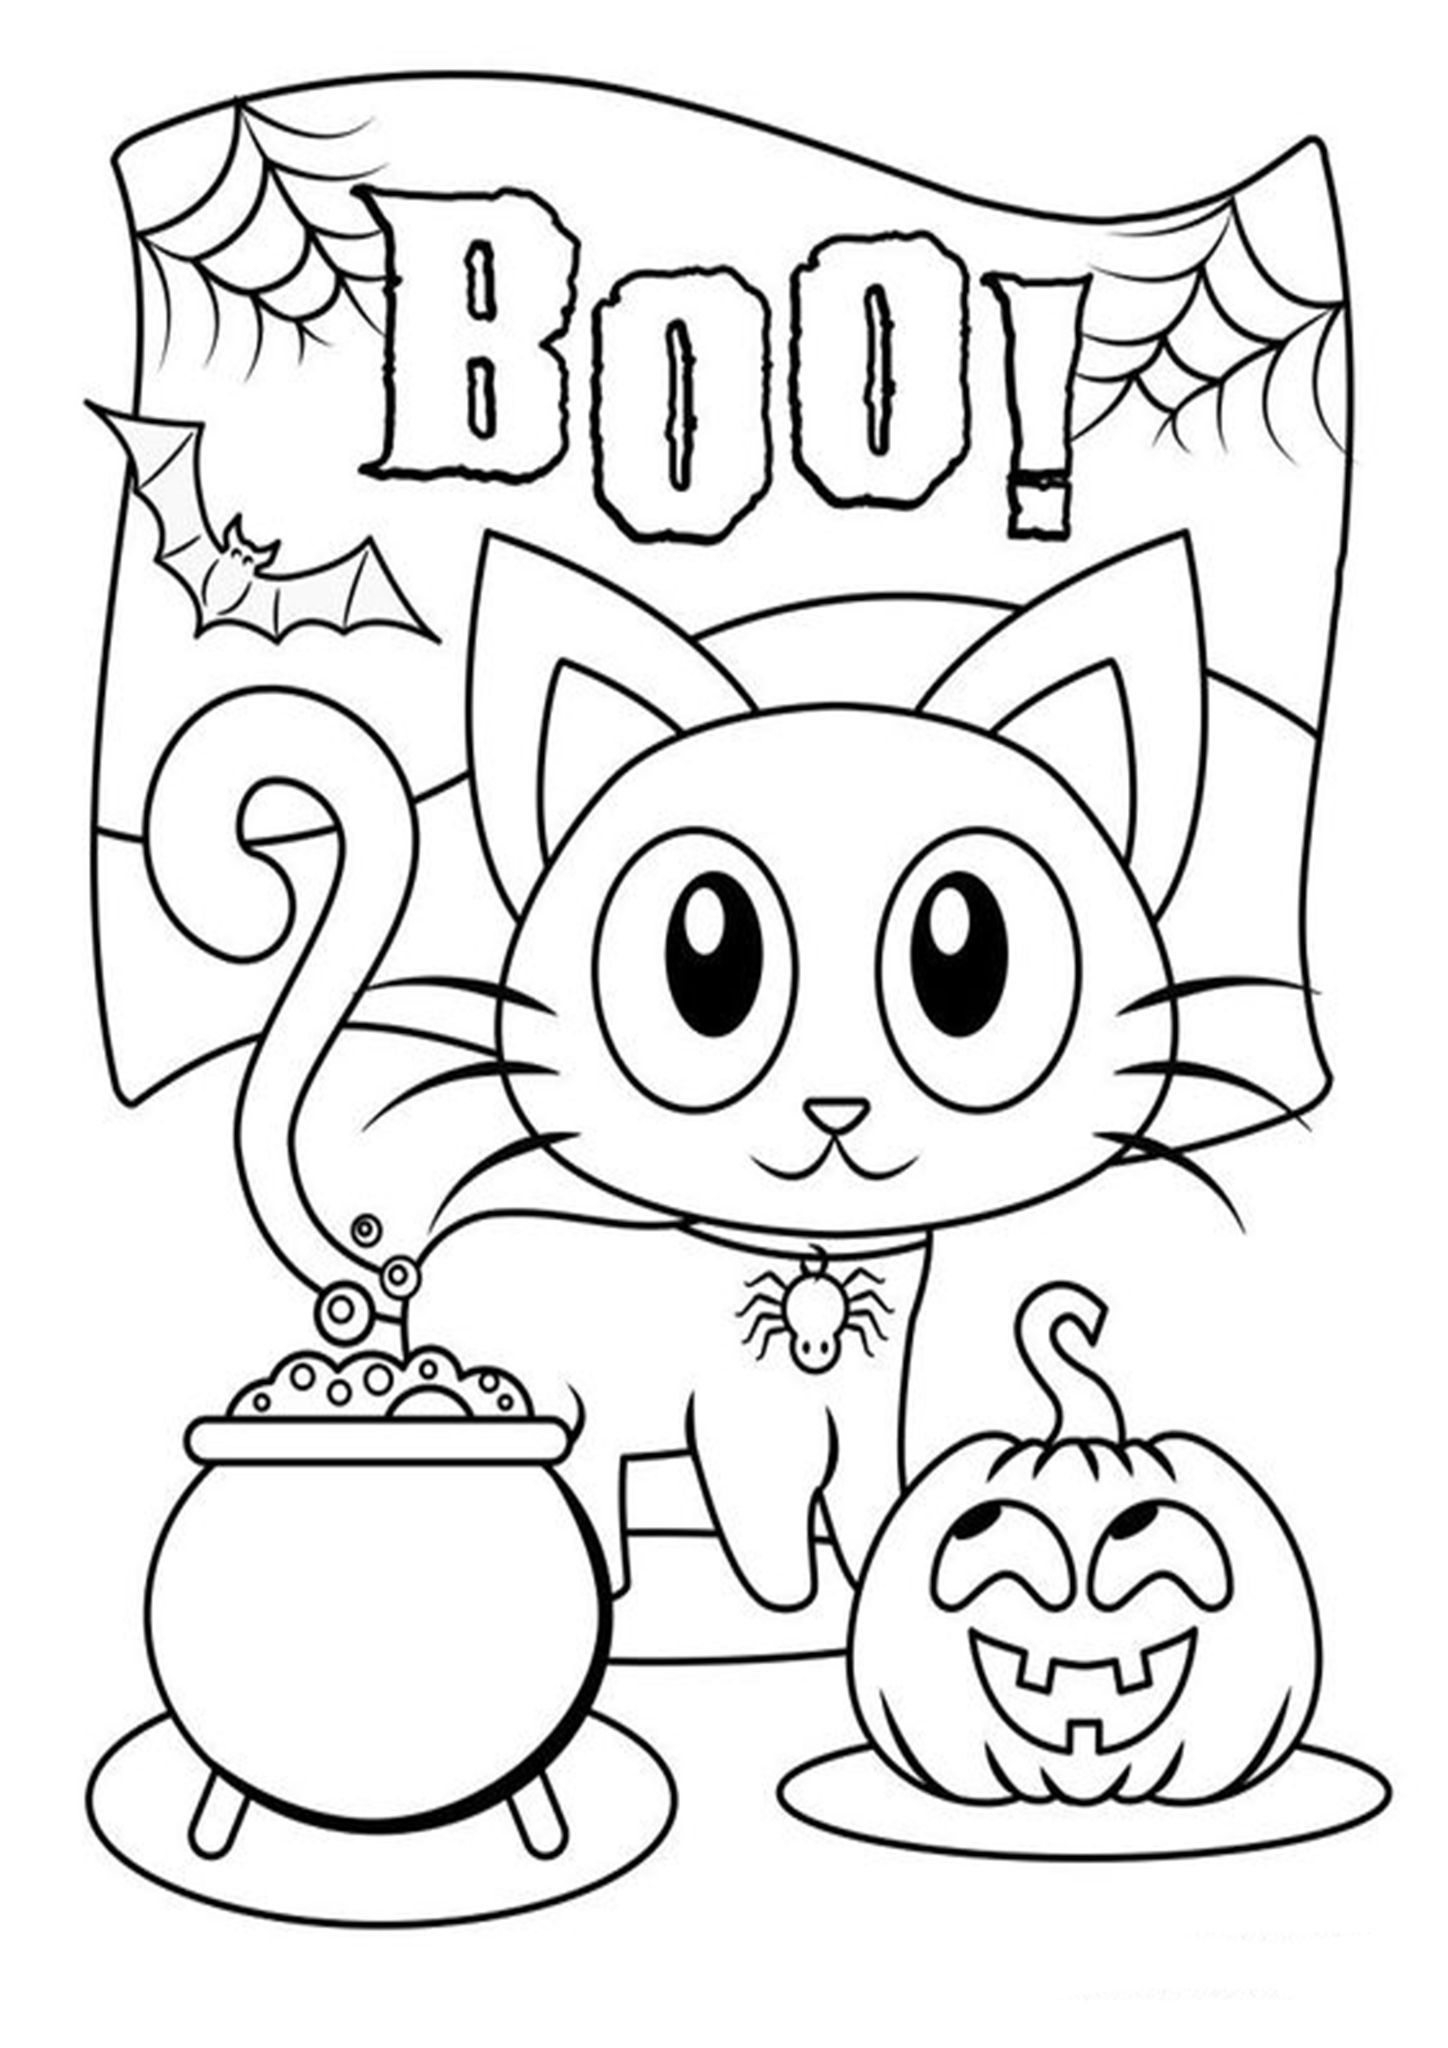 Pin On Animals Dragons Dinosaur Coloring Pages